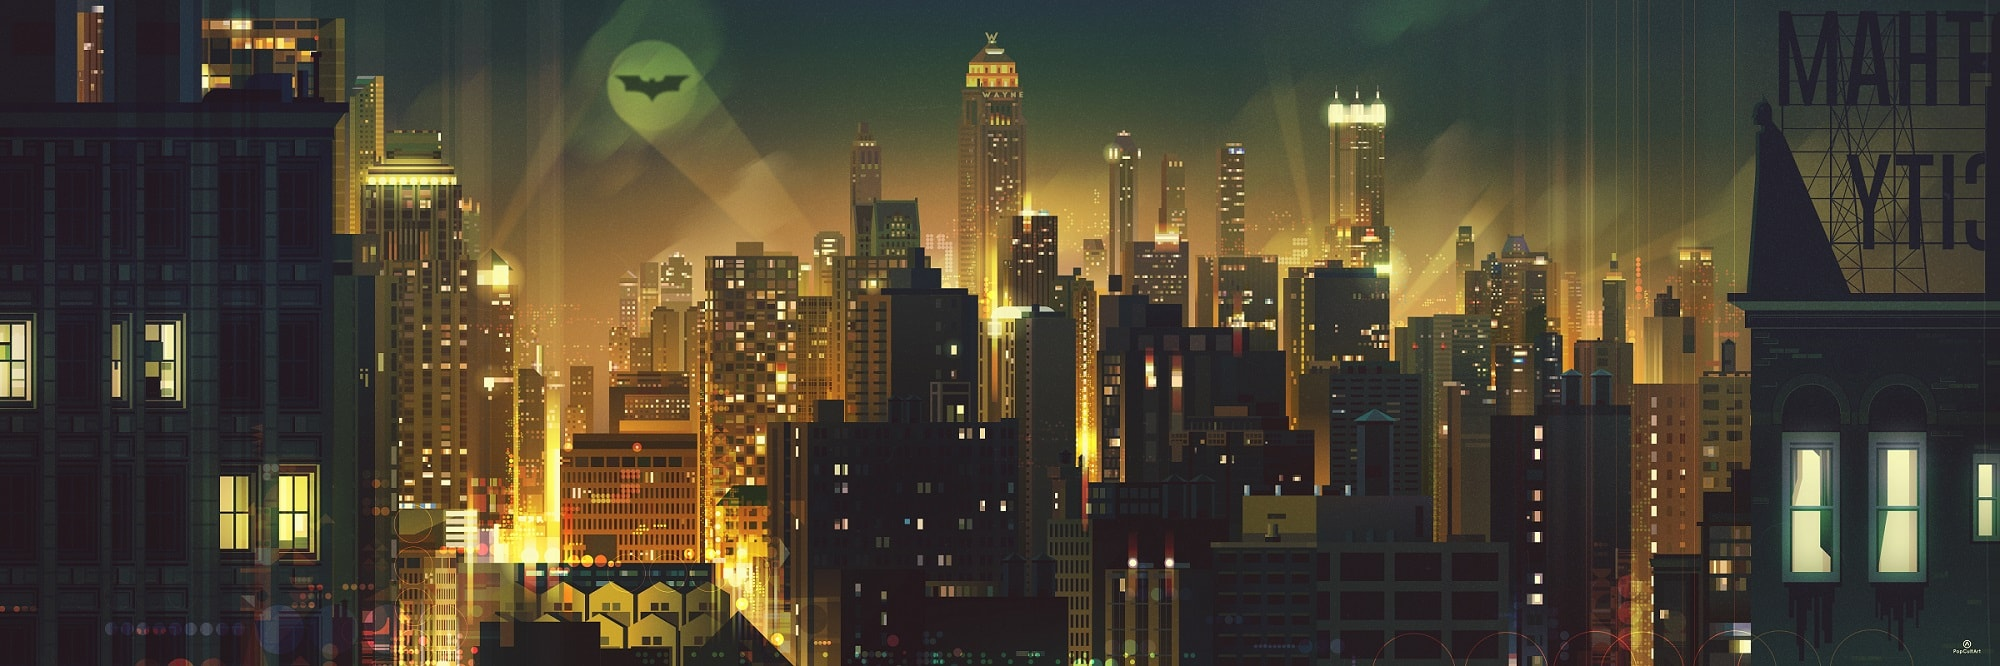 Gotham city by James Gilleard- original